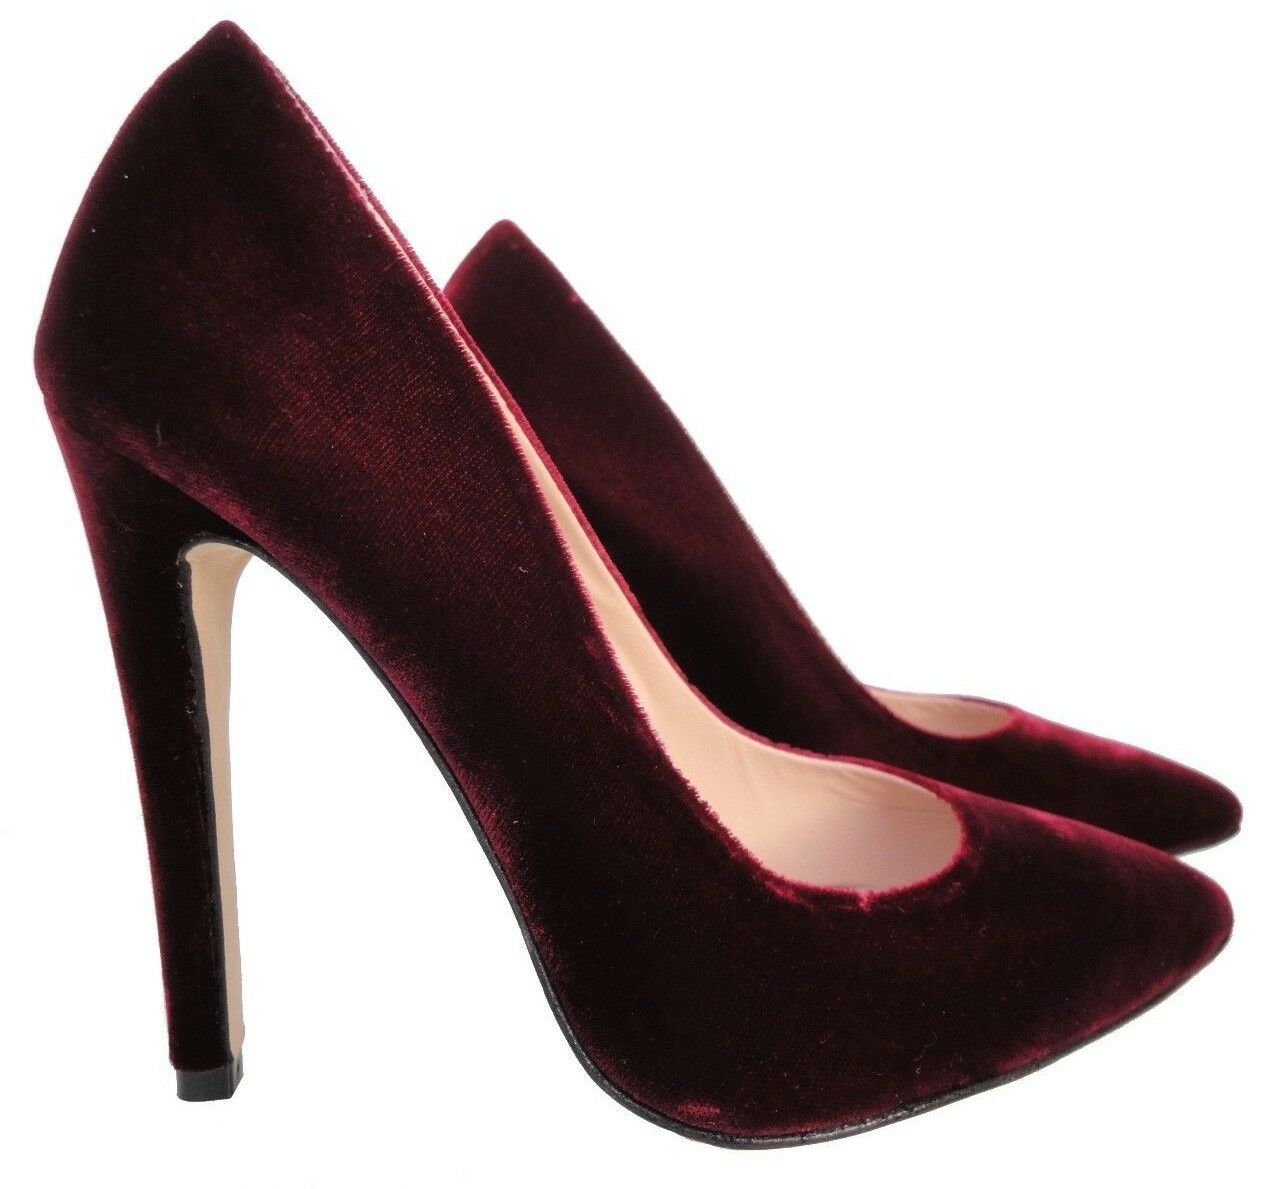 CQ COUTURE ITALY HIGH HEELS POINTY PUMPS SCHUHE DECOLTE VELVET RED BOURDEAUX 36